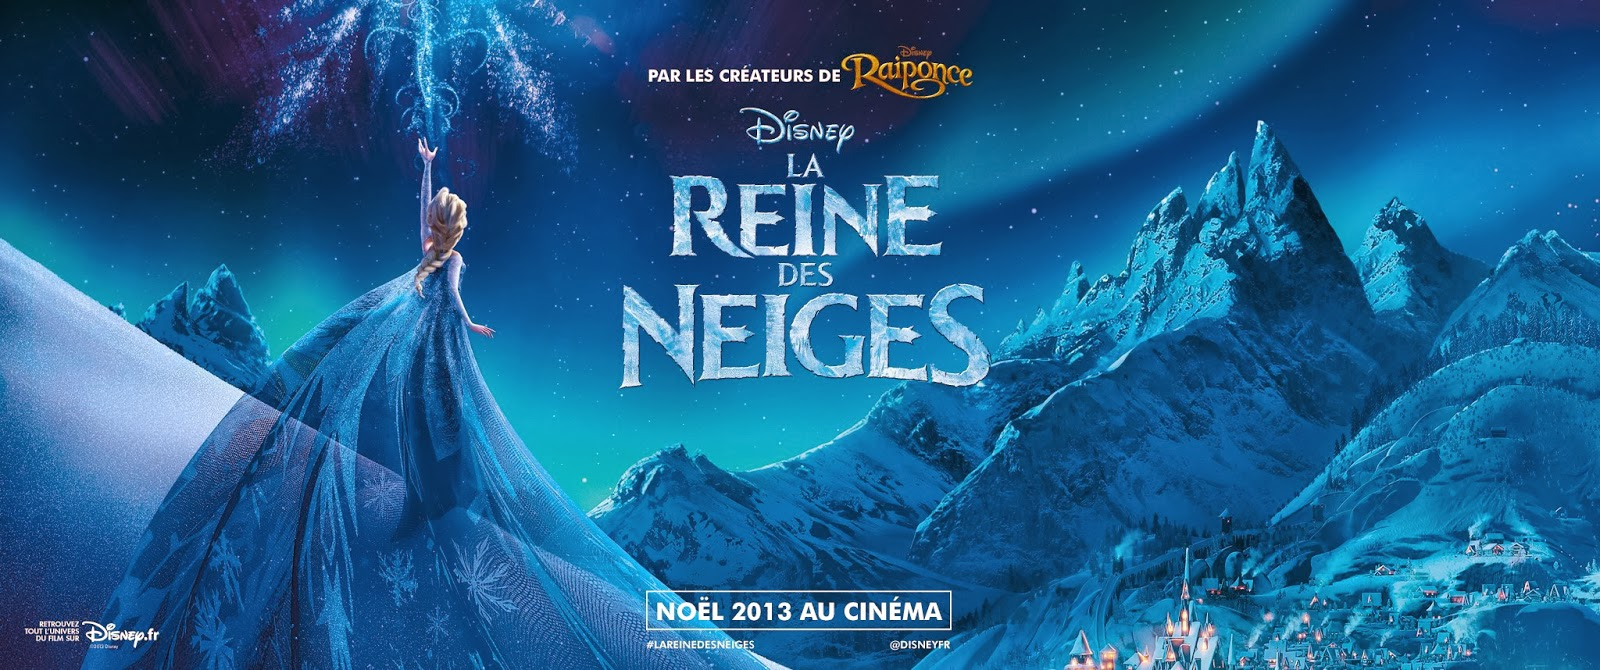 La reine des neiges studios Disney